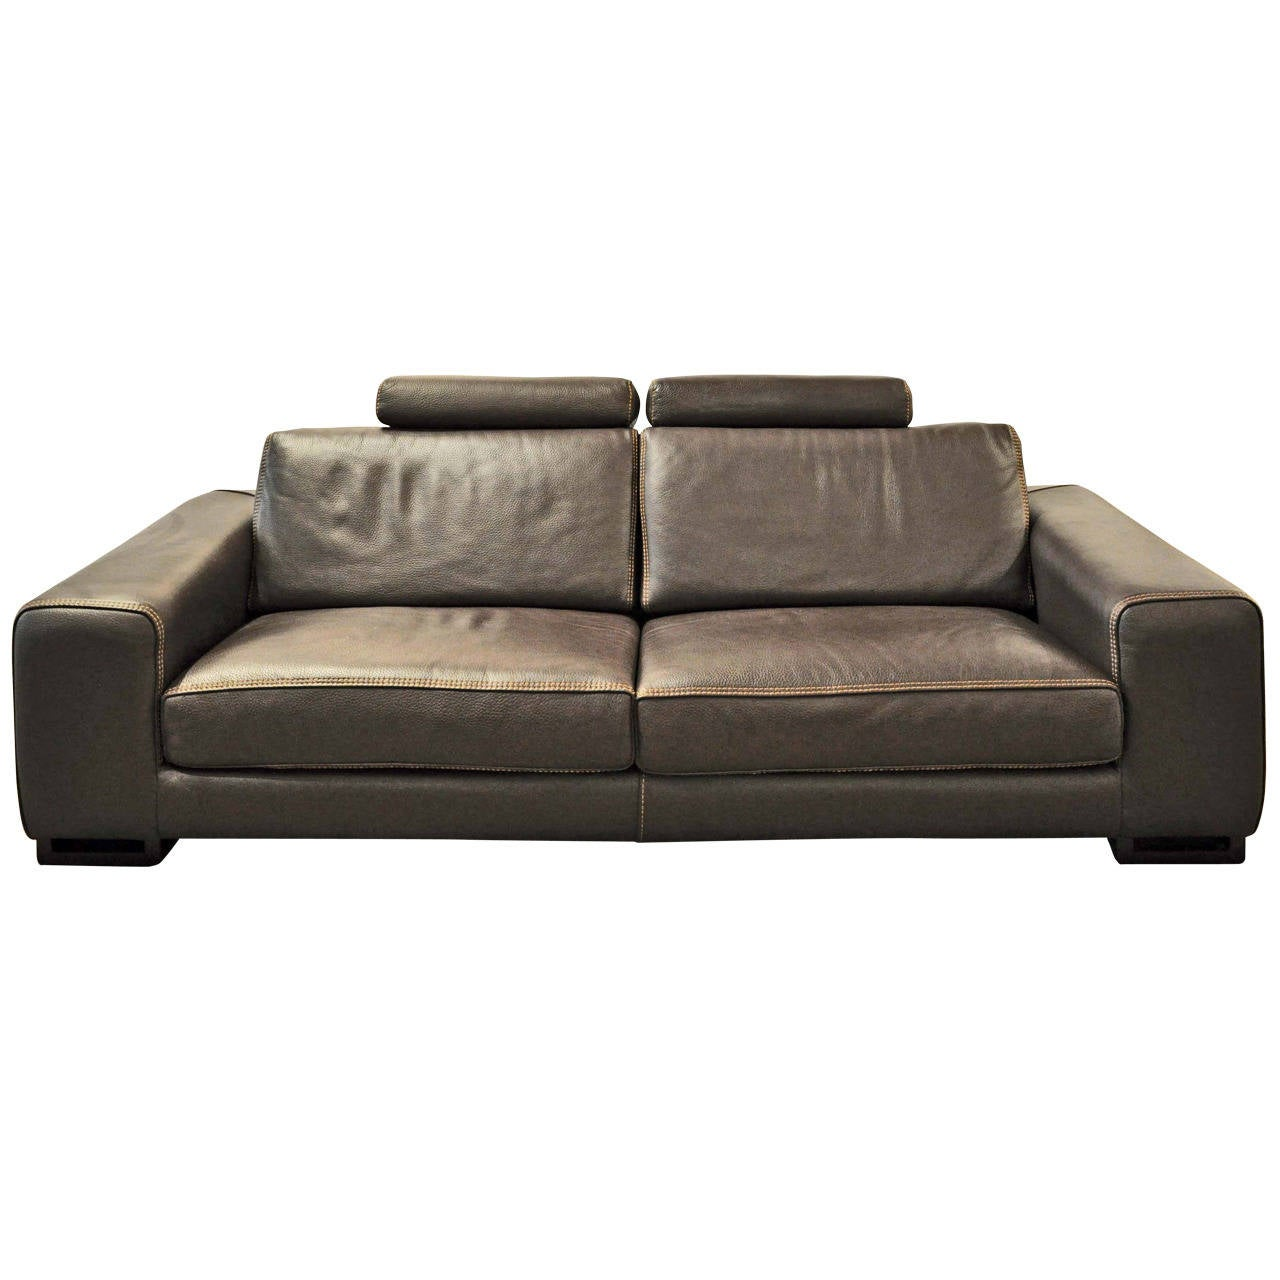 roche bobois chocolat upholstered leather sofa at 1stdibs. Black Bedroom Furniture Sets. Home Design Ideas